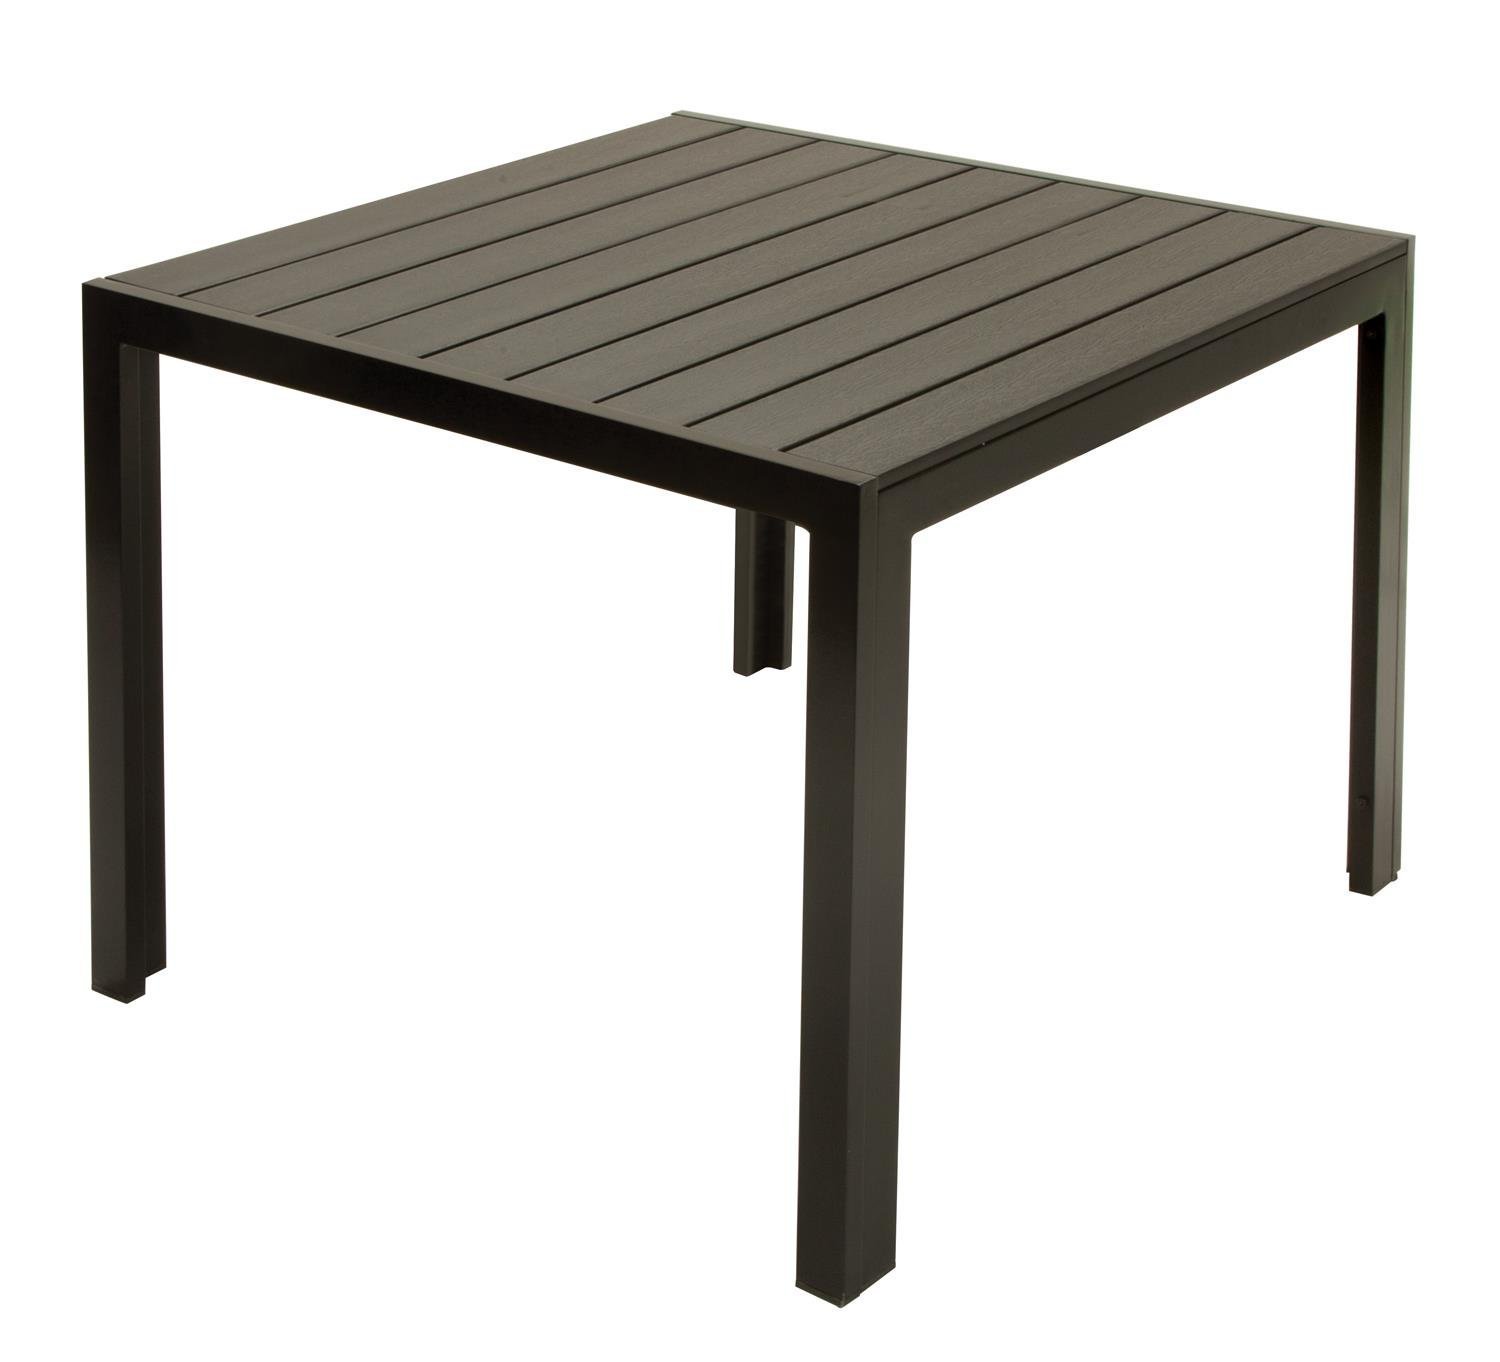 Amazing Amazon.com: Cosco Outdoor Resin Slat, Square Dining Table, 35.4 By  35.4 Inch: Kitchen U0026 Dining